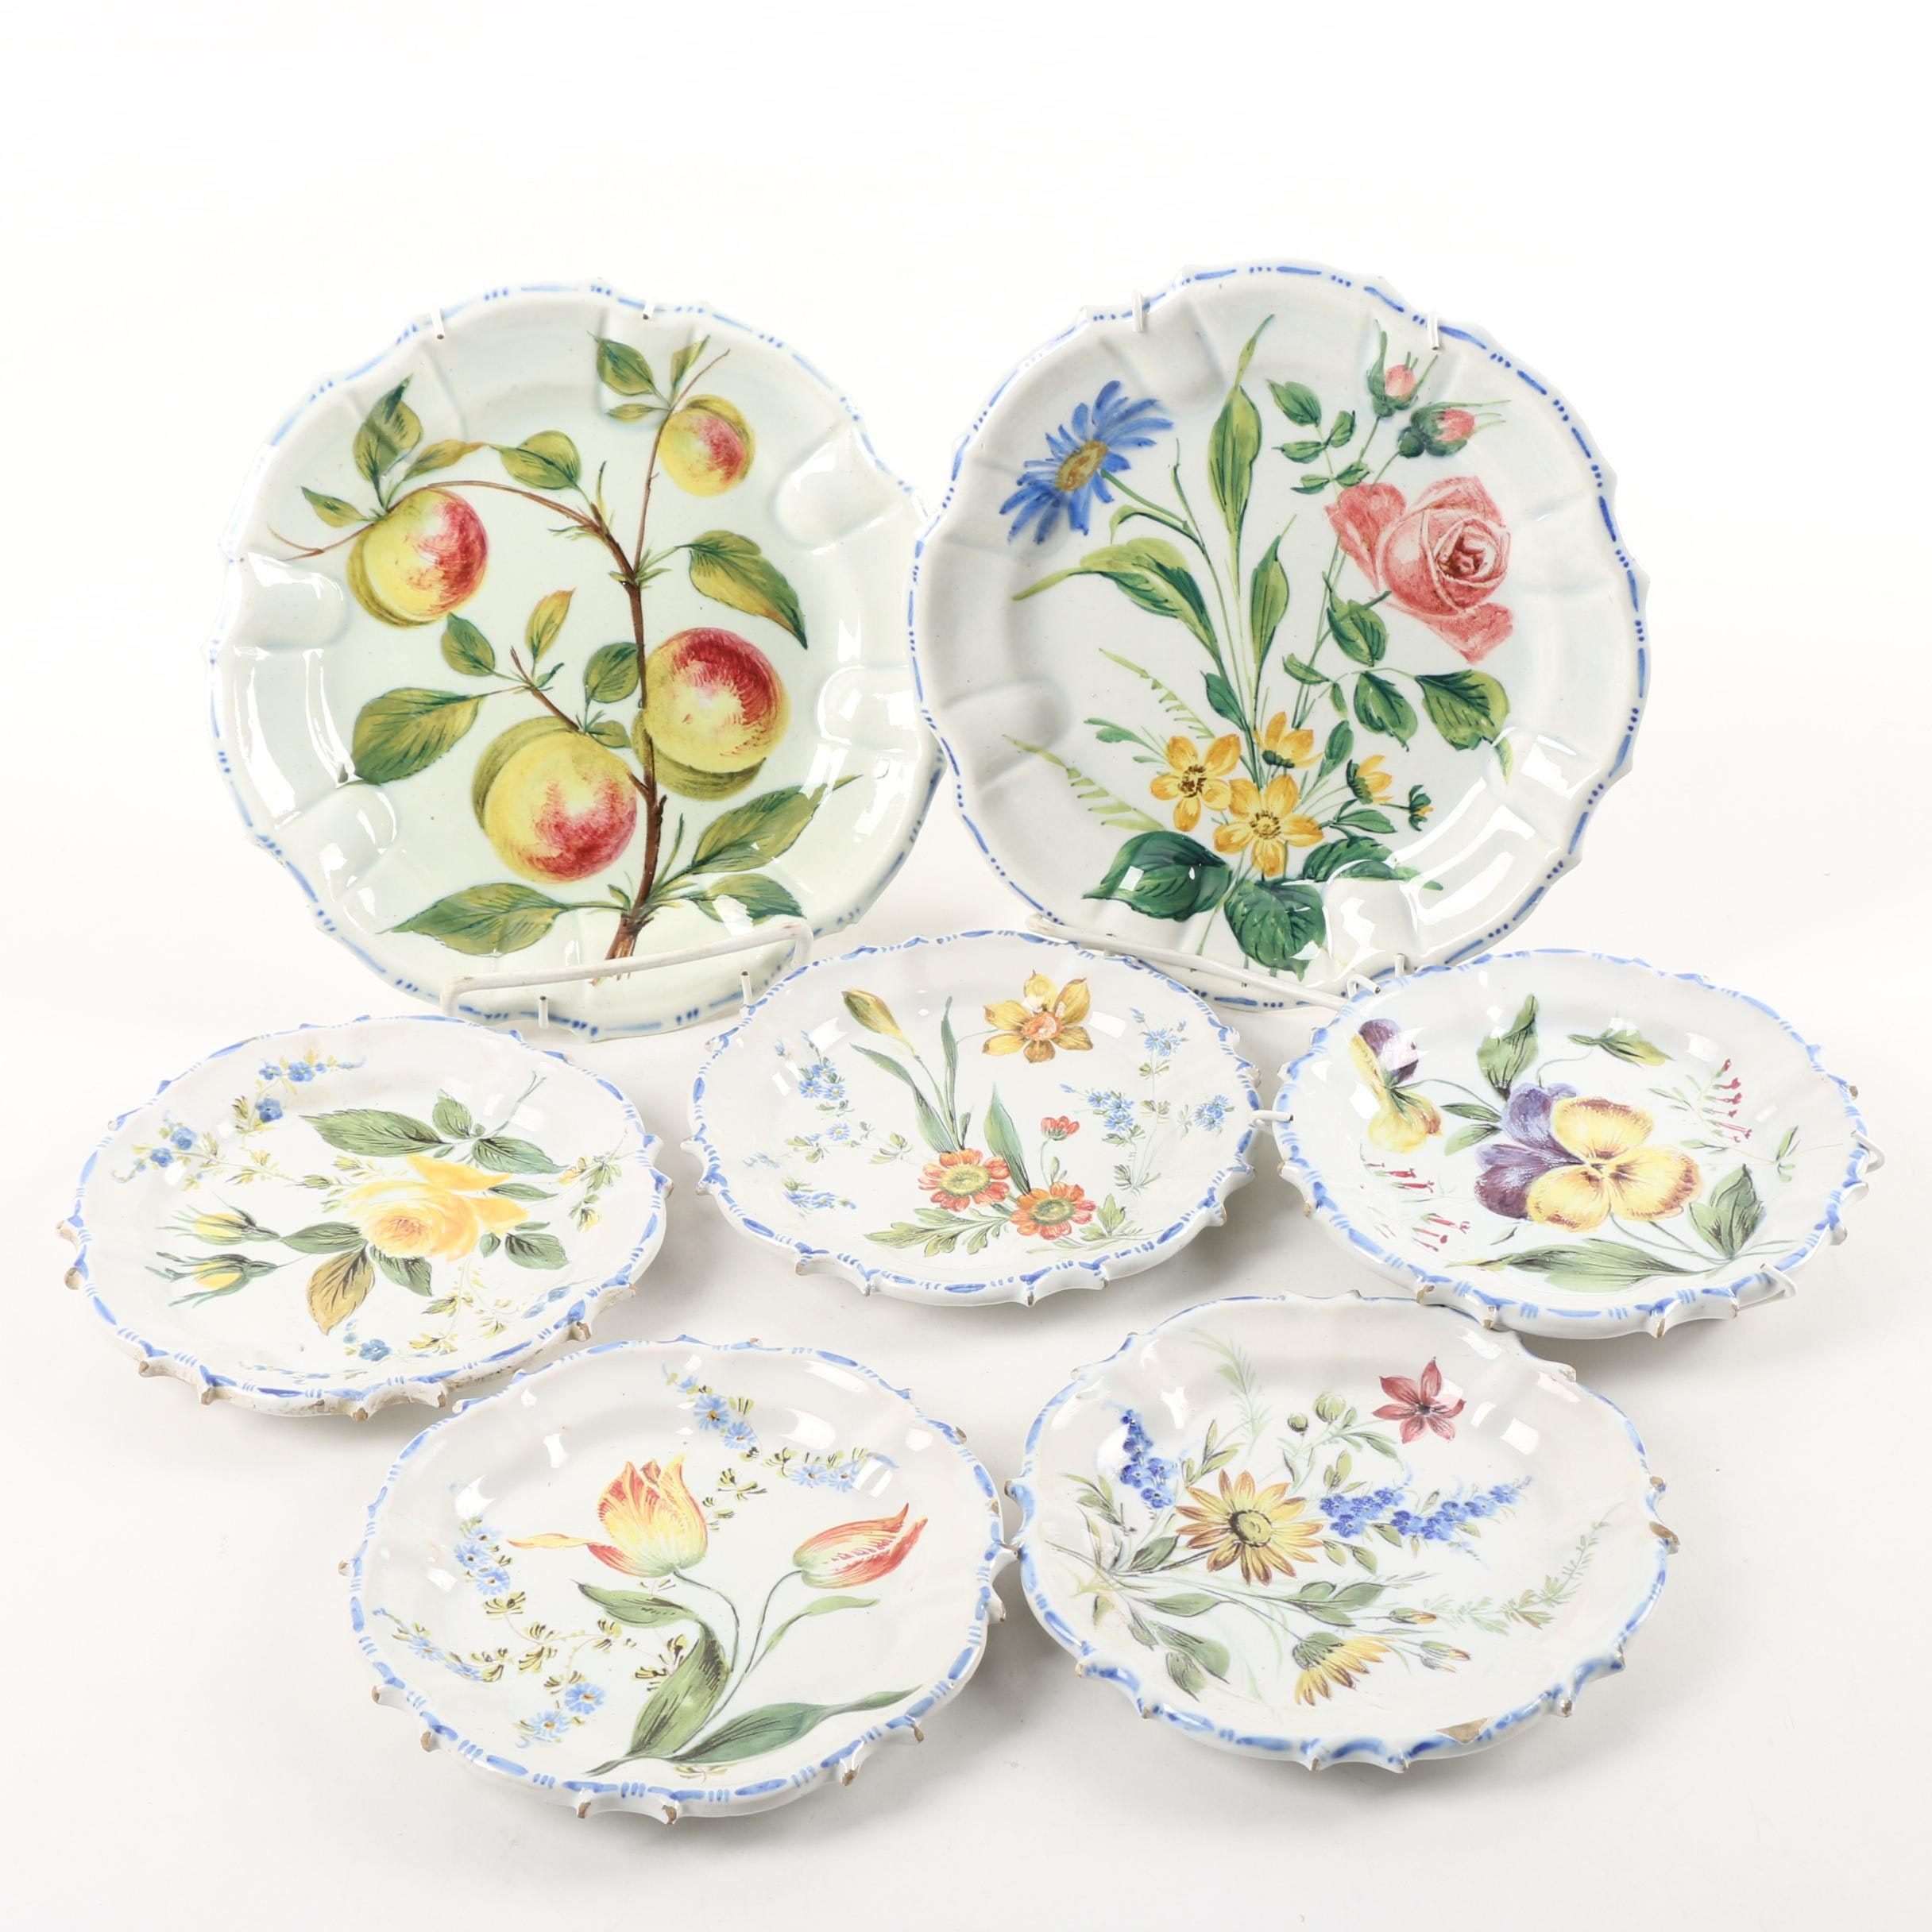 Vintage Nove and other Majolica Plates